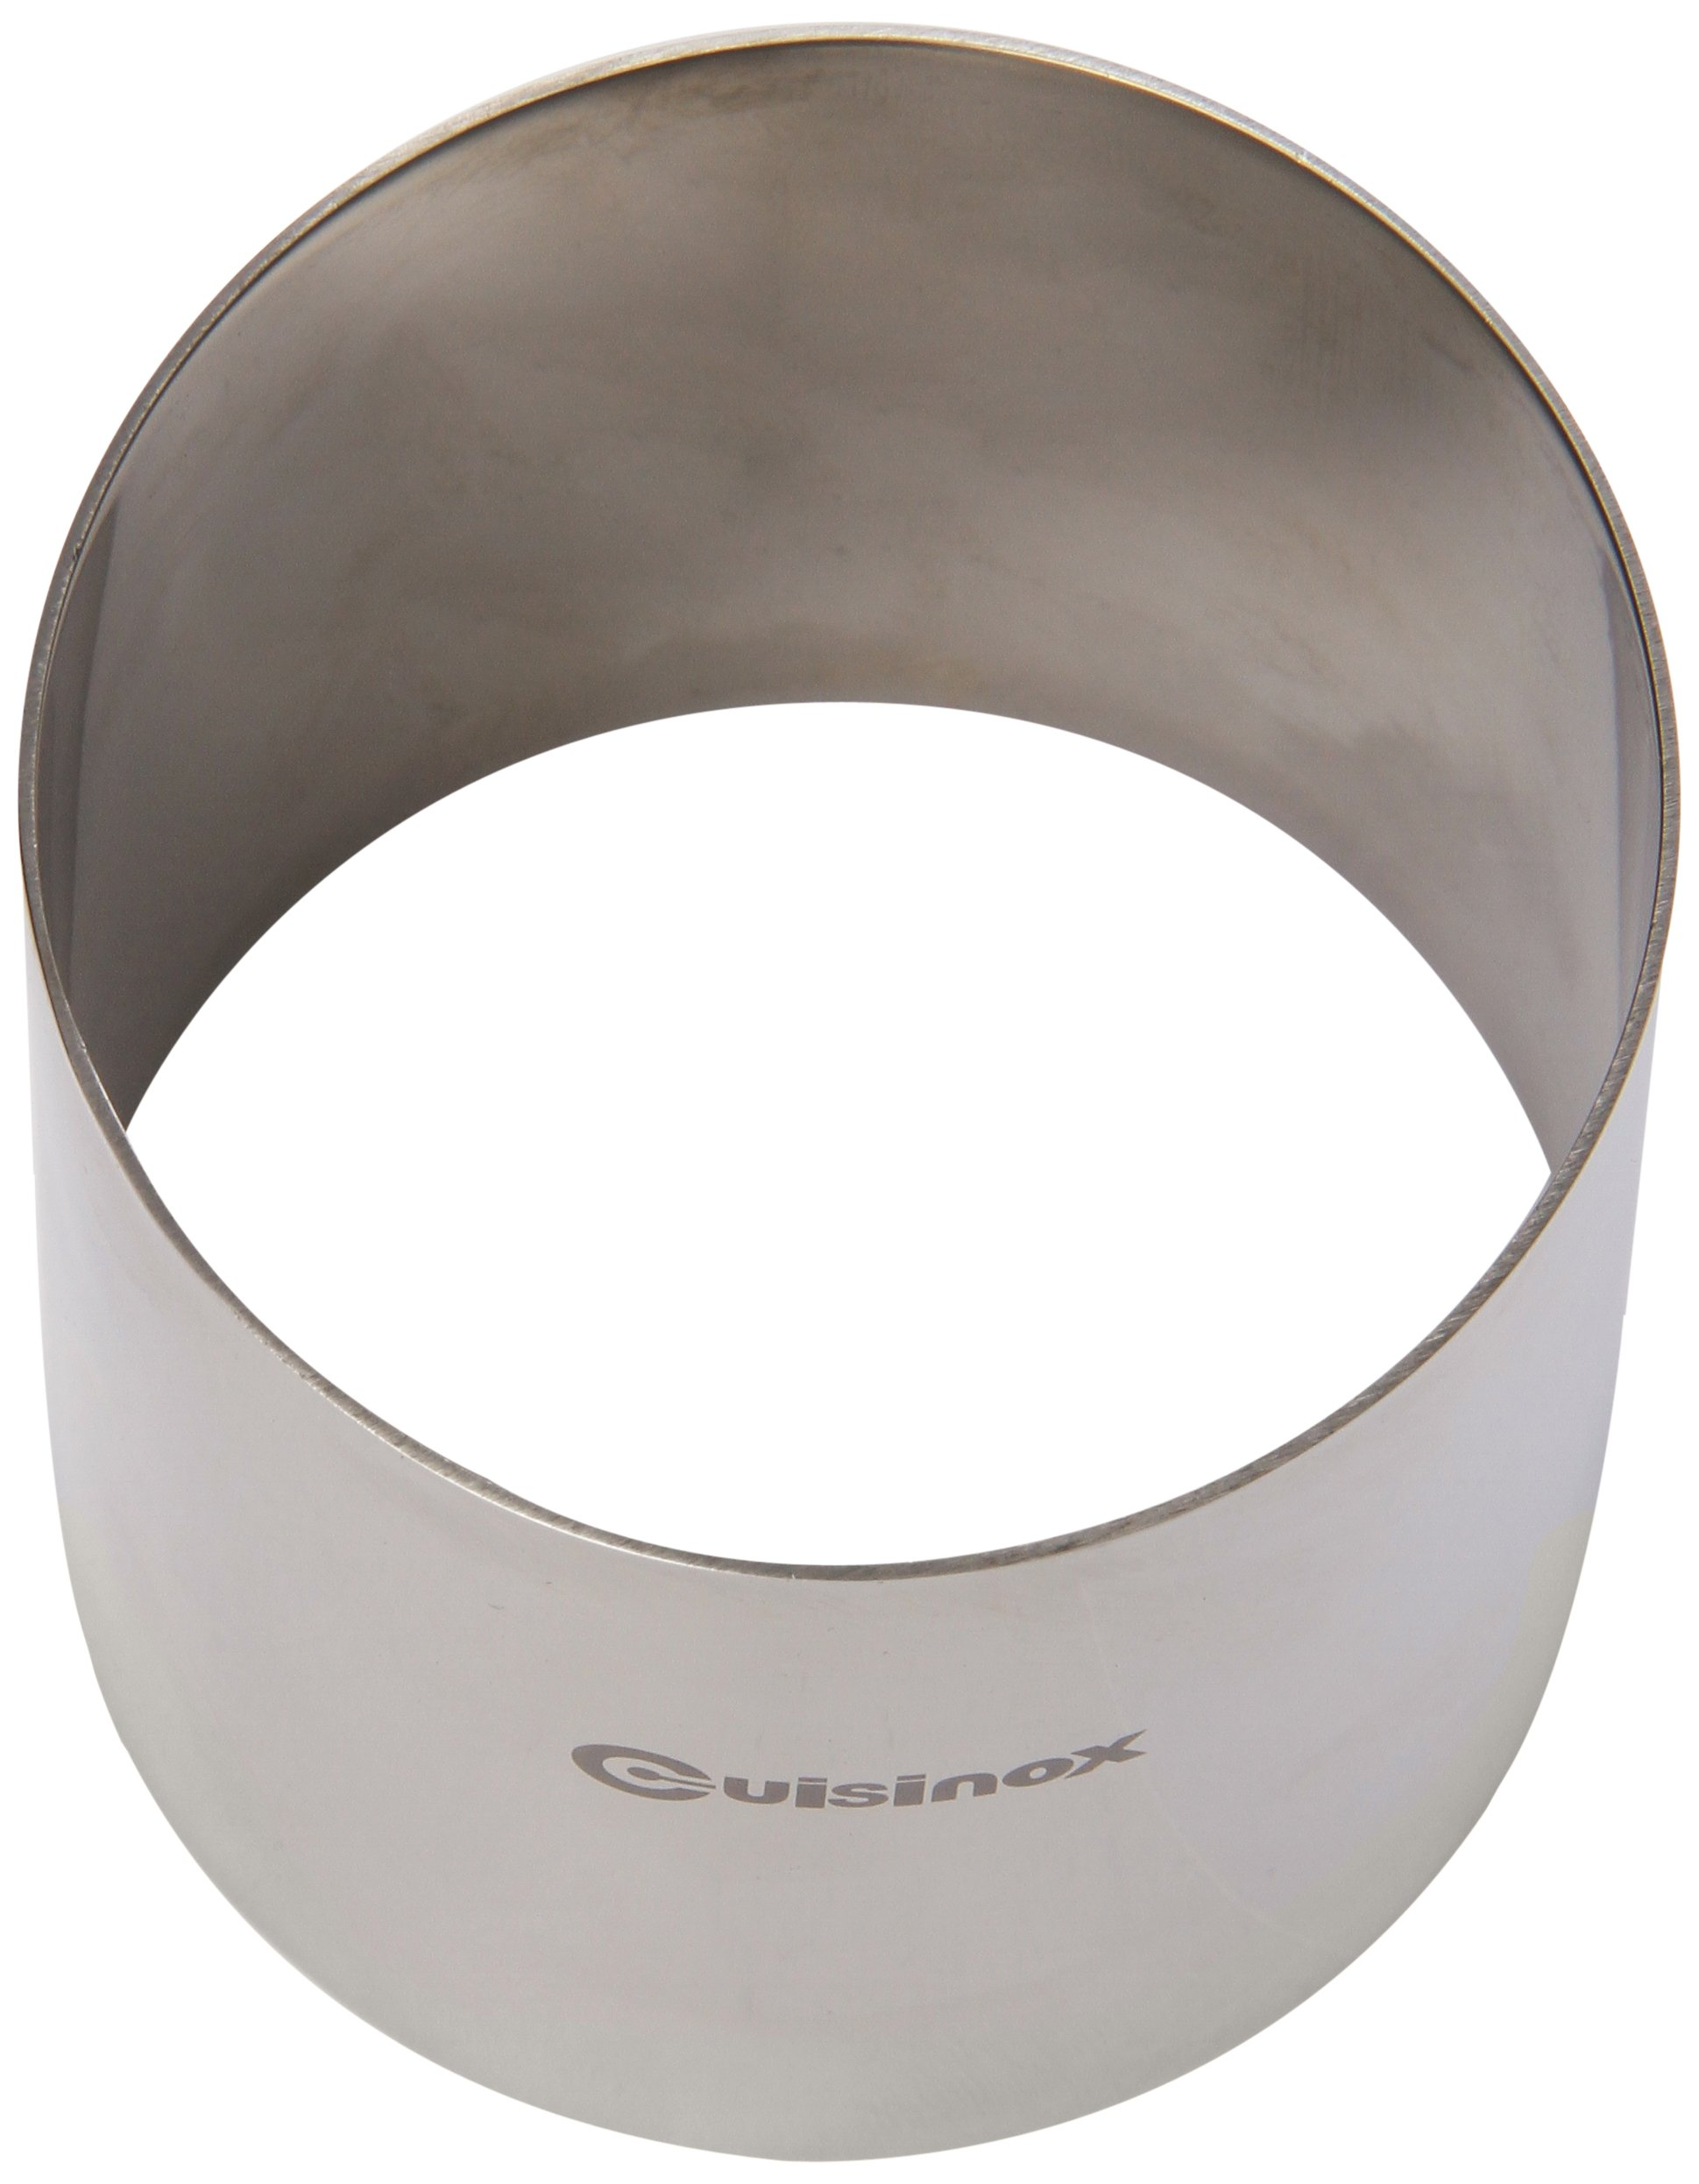 Cuisinox RNG-7075 Pastry Ring/Food Stacker, 70mm Diameter by 75mm Height, Stainless Steel